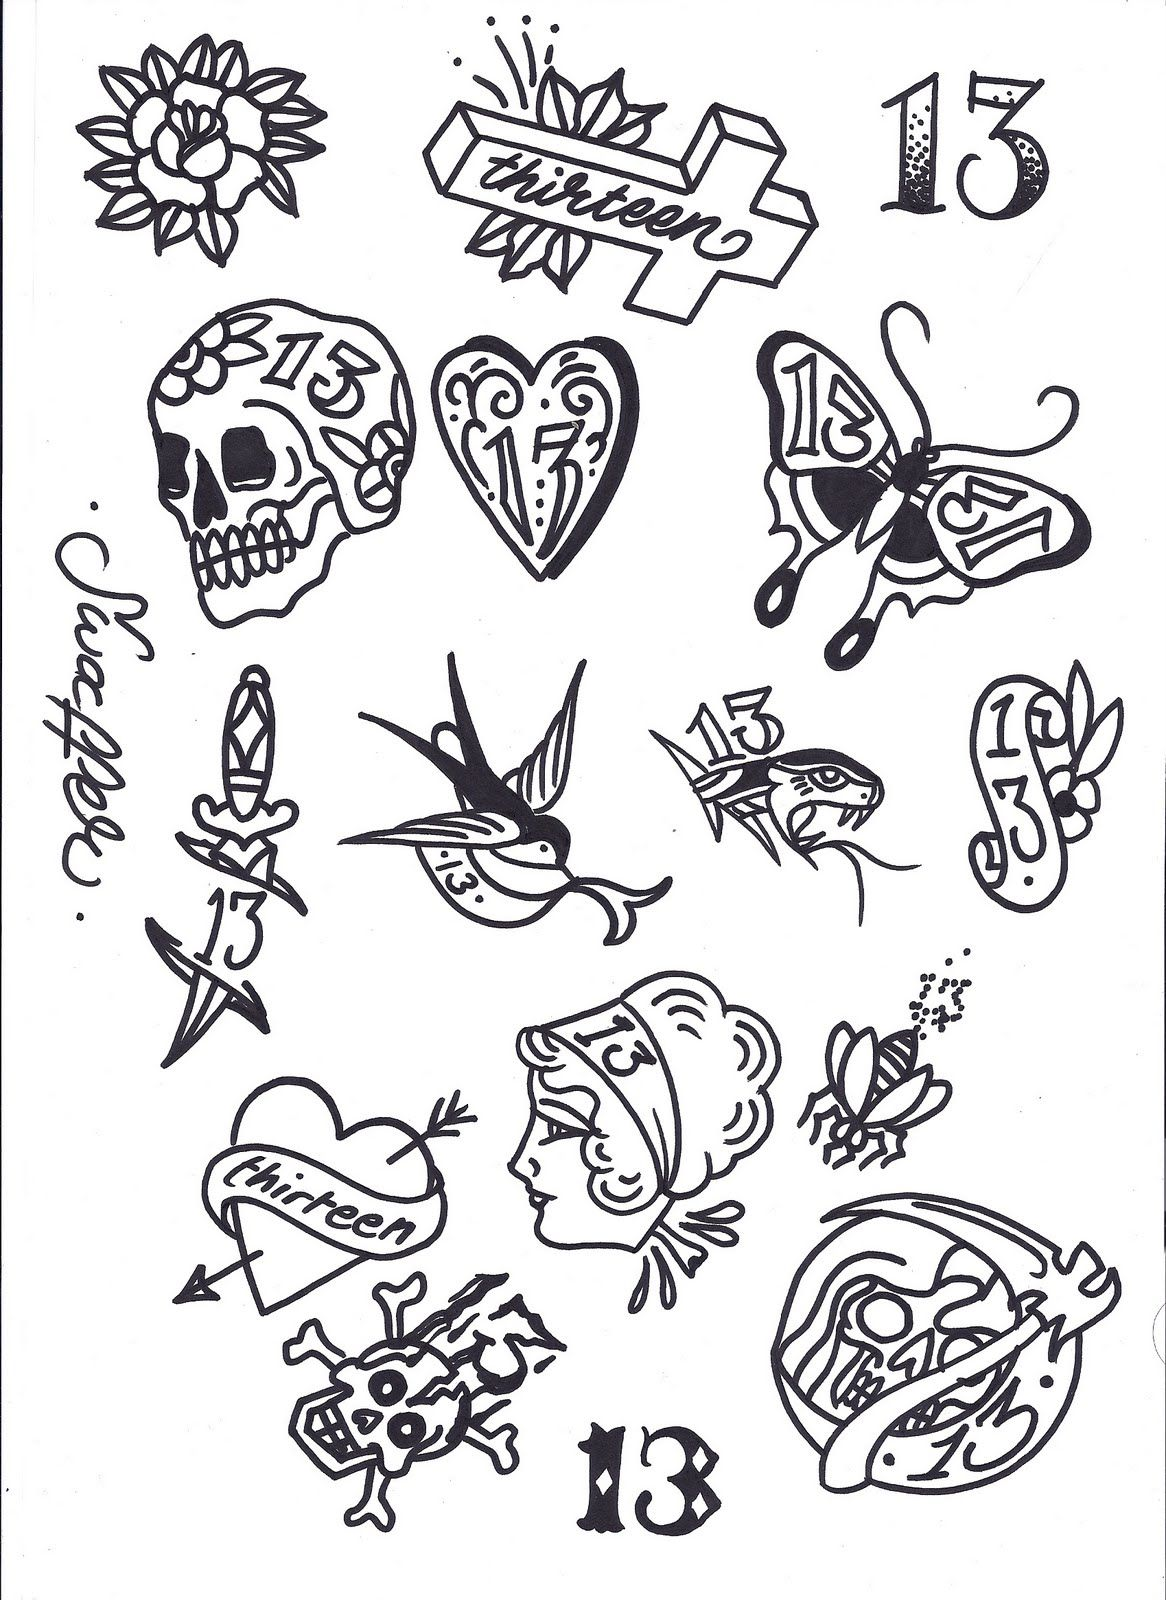 Pinning for ghe rose in the upper left | Tattoo ideas | 13 tattoos ...